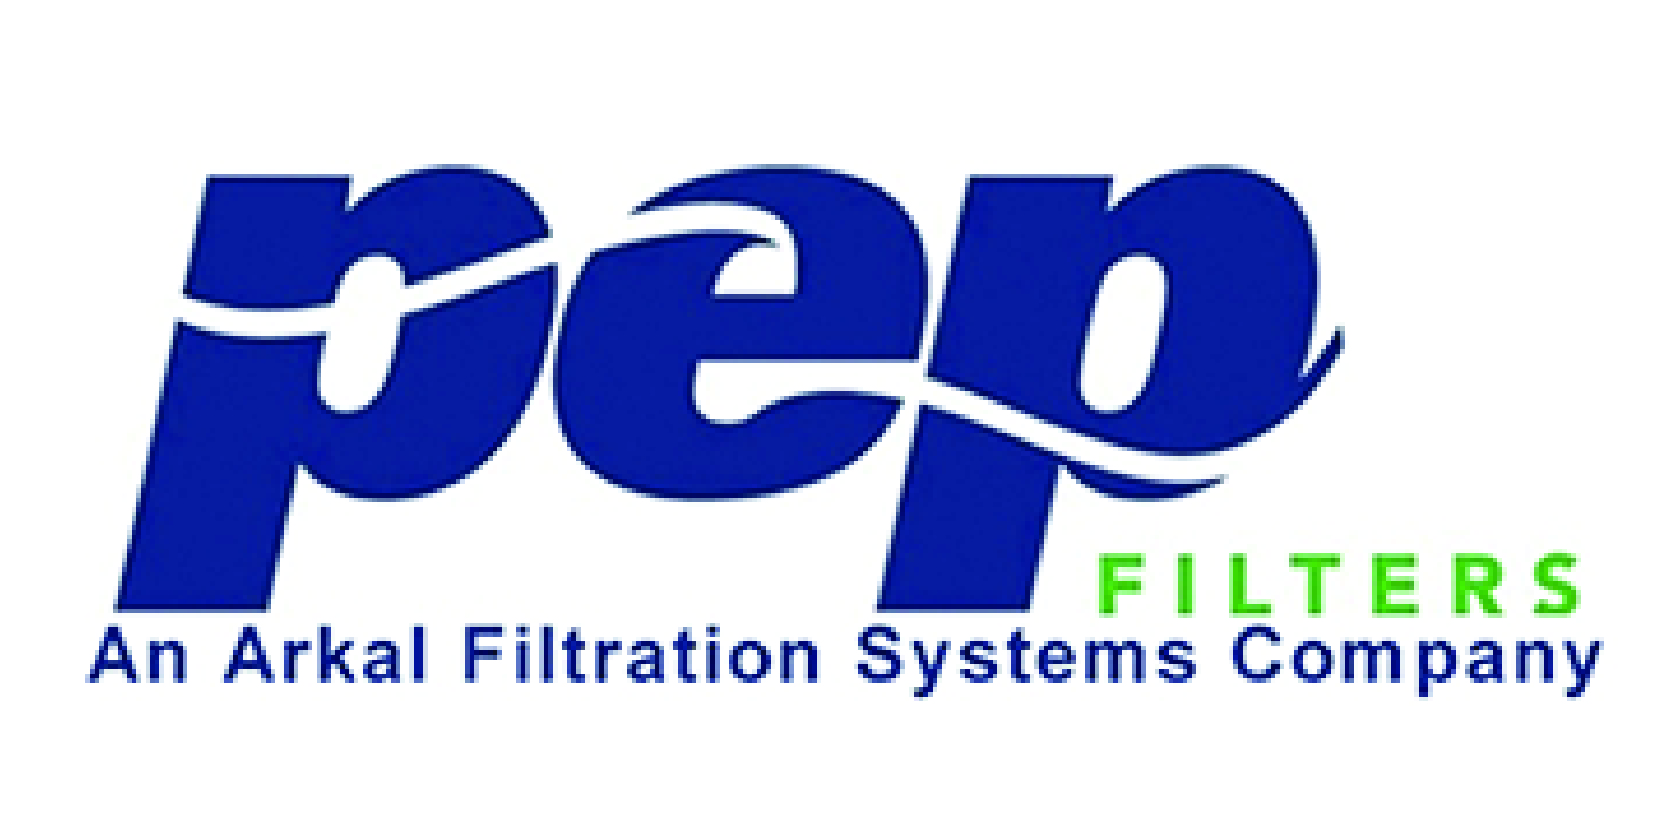 Media, screen, and disc filters, centrifugal separators